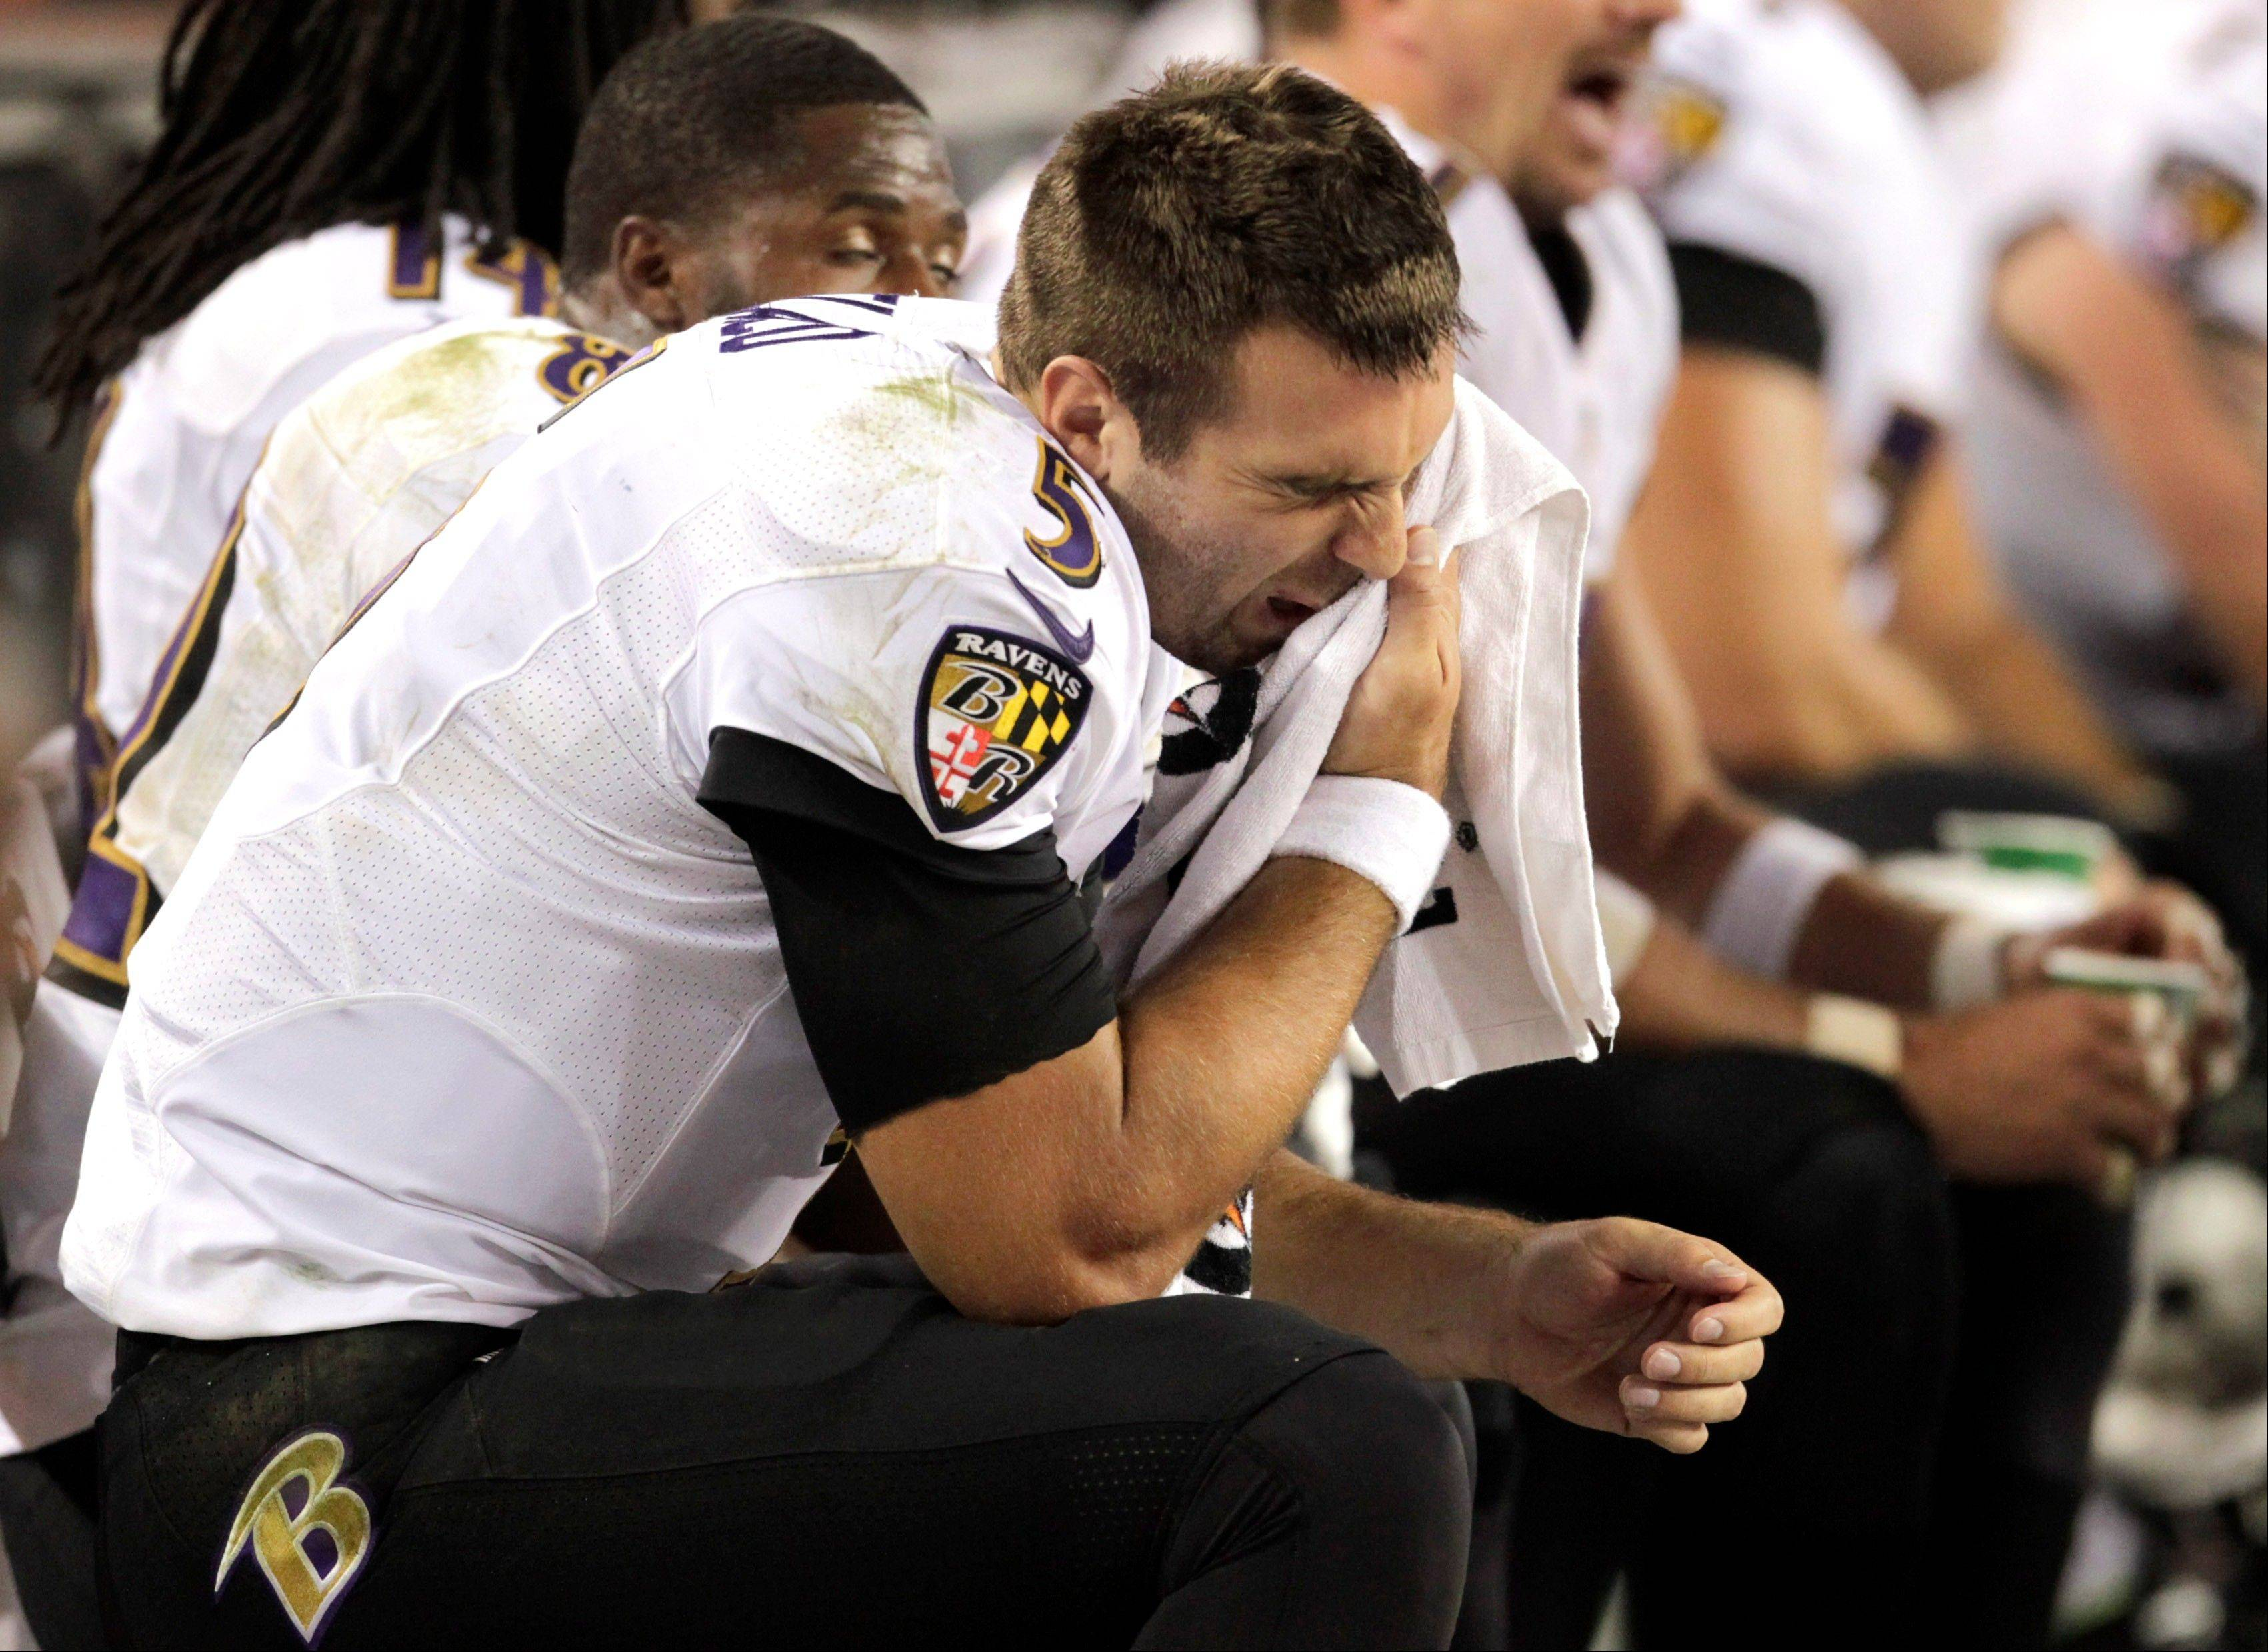 Baltimore Ravens quarterback Joe Flacco sits on the bench during the second half of an NFL football game against the Denver Broncos, Thursday, Sept. 5, 2013, in Denver.